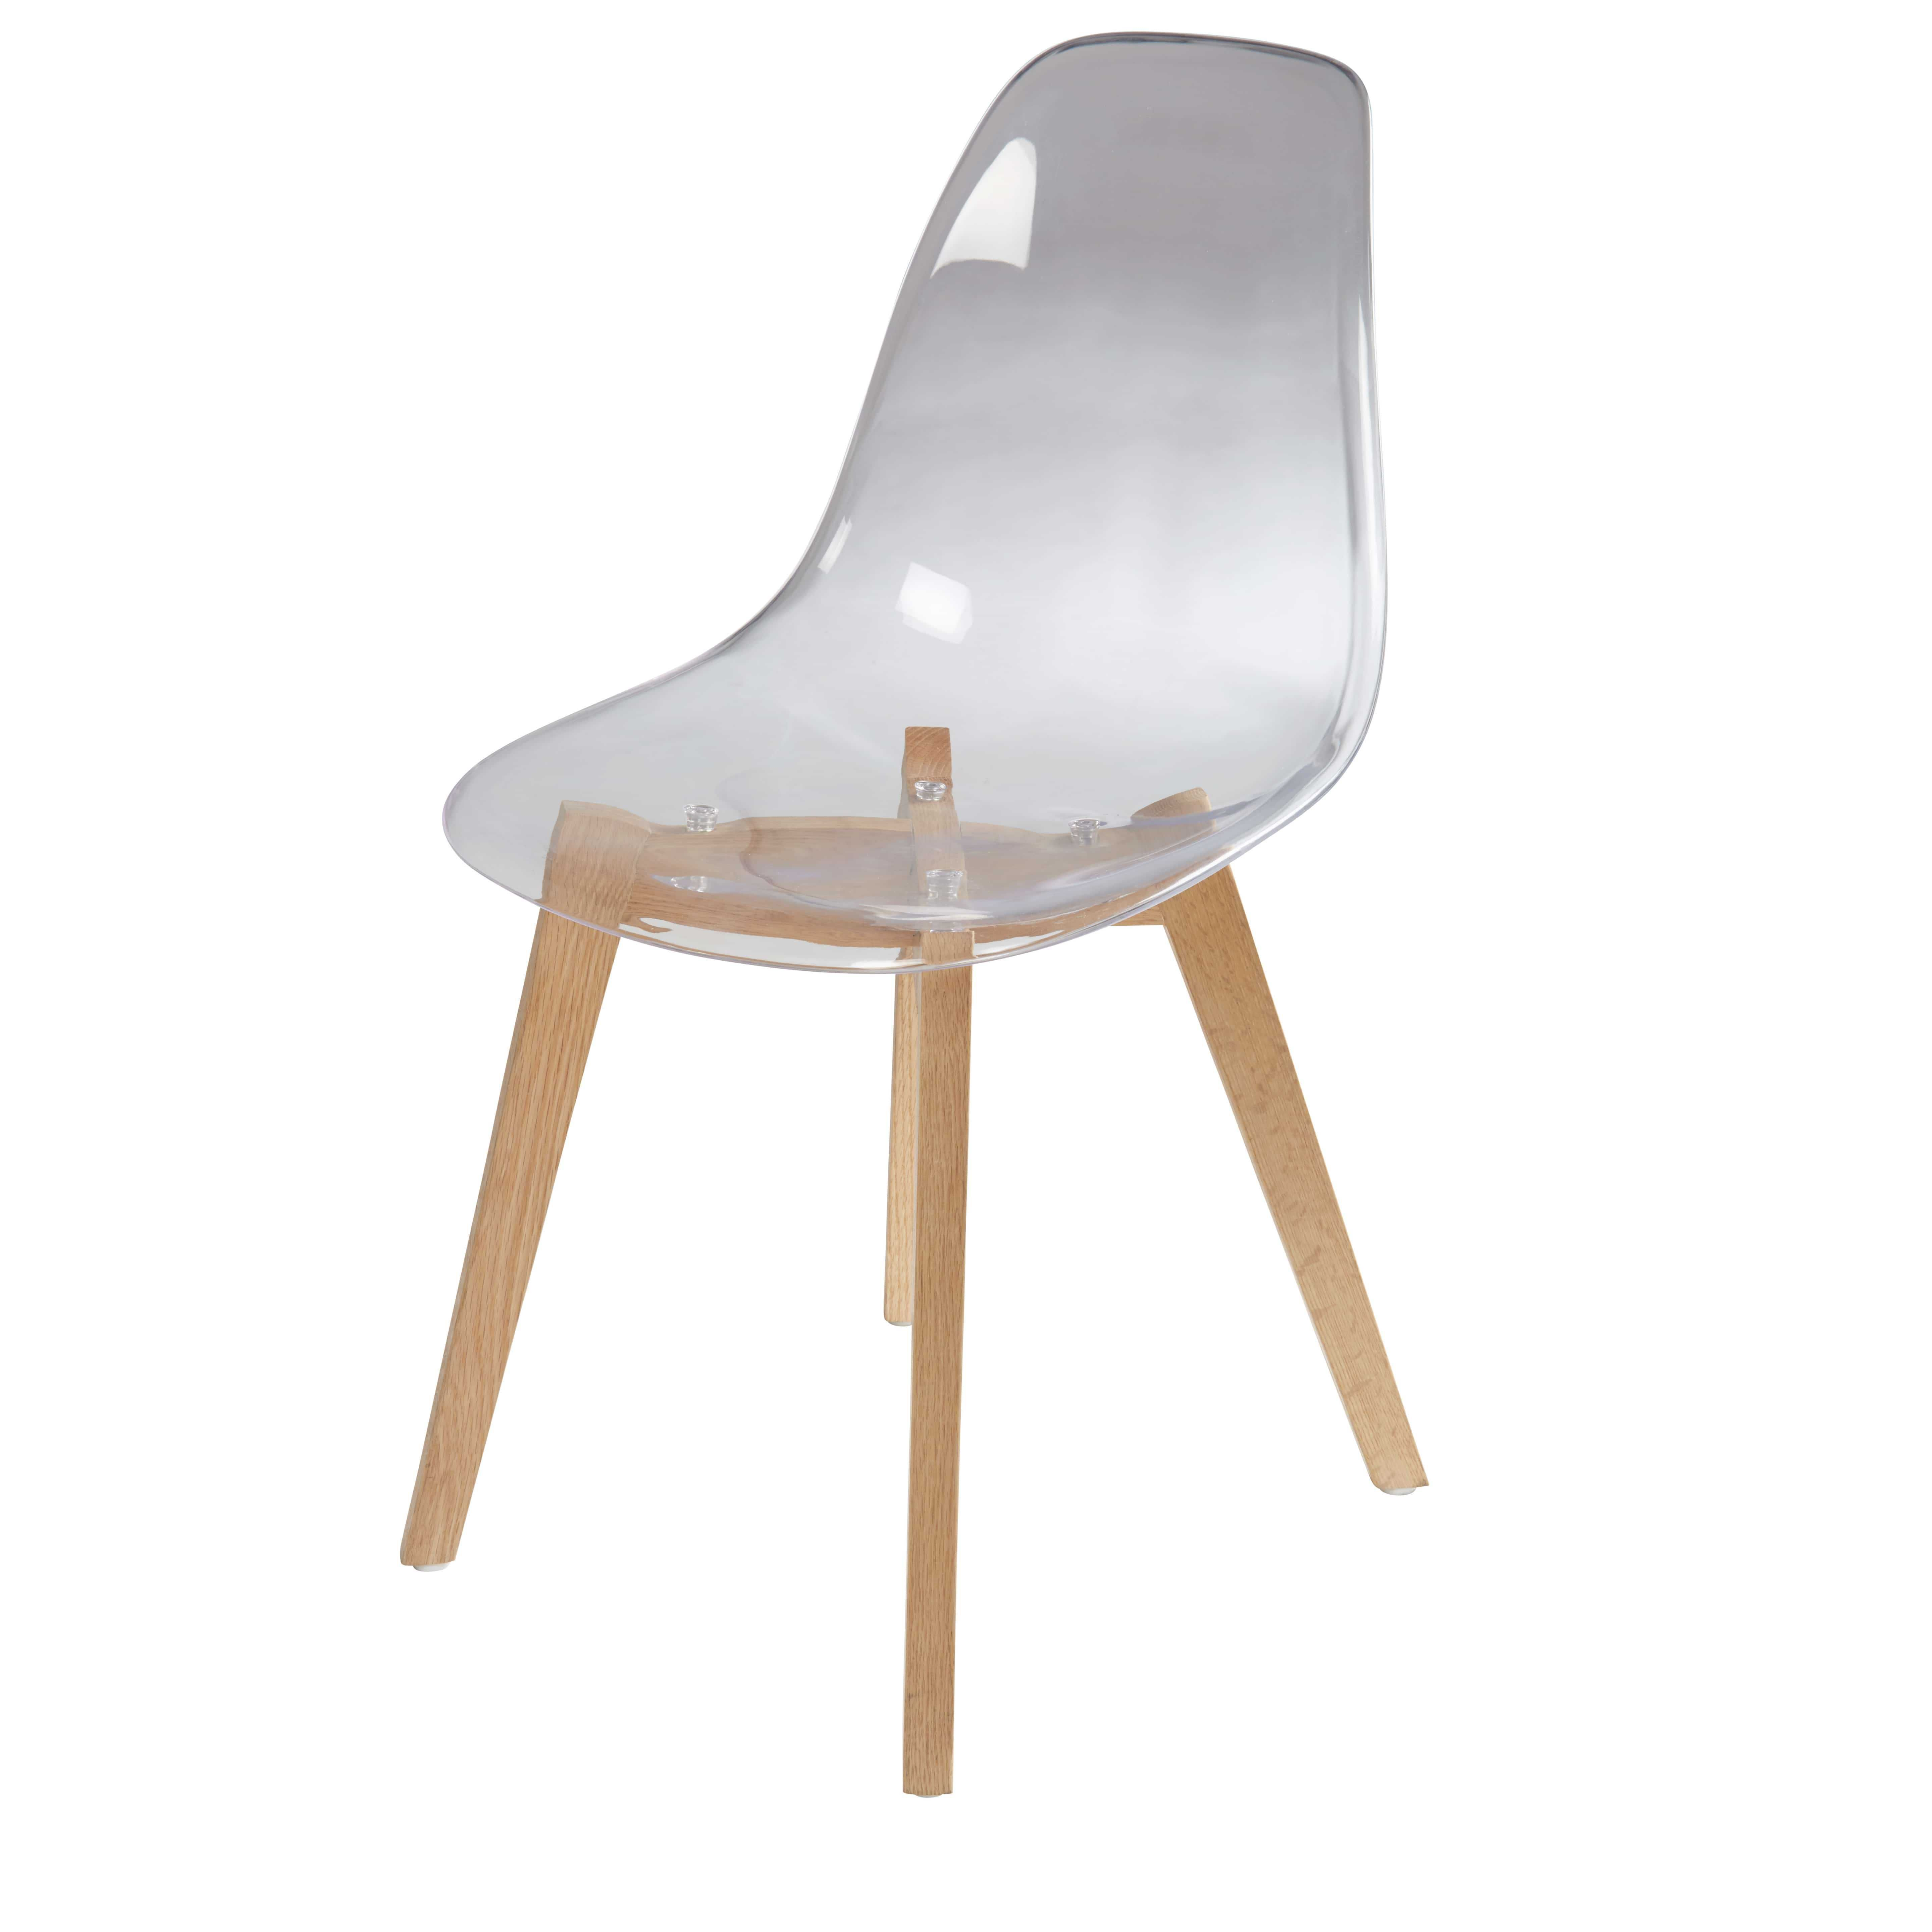 Chaise Transparente Et Chene Ice Chaise Style Scandinave Chaise Transparente Chaise Scandinave